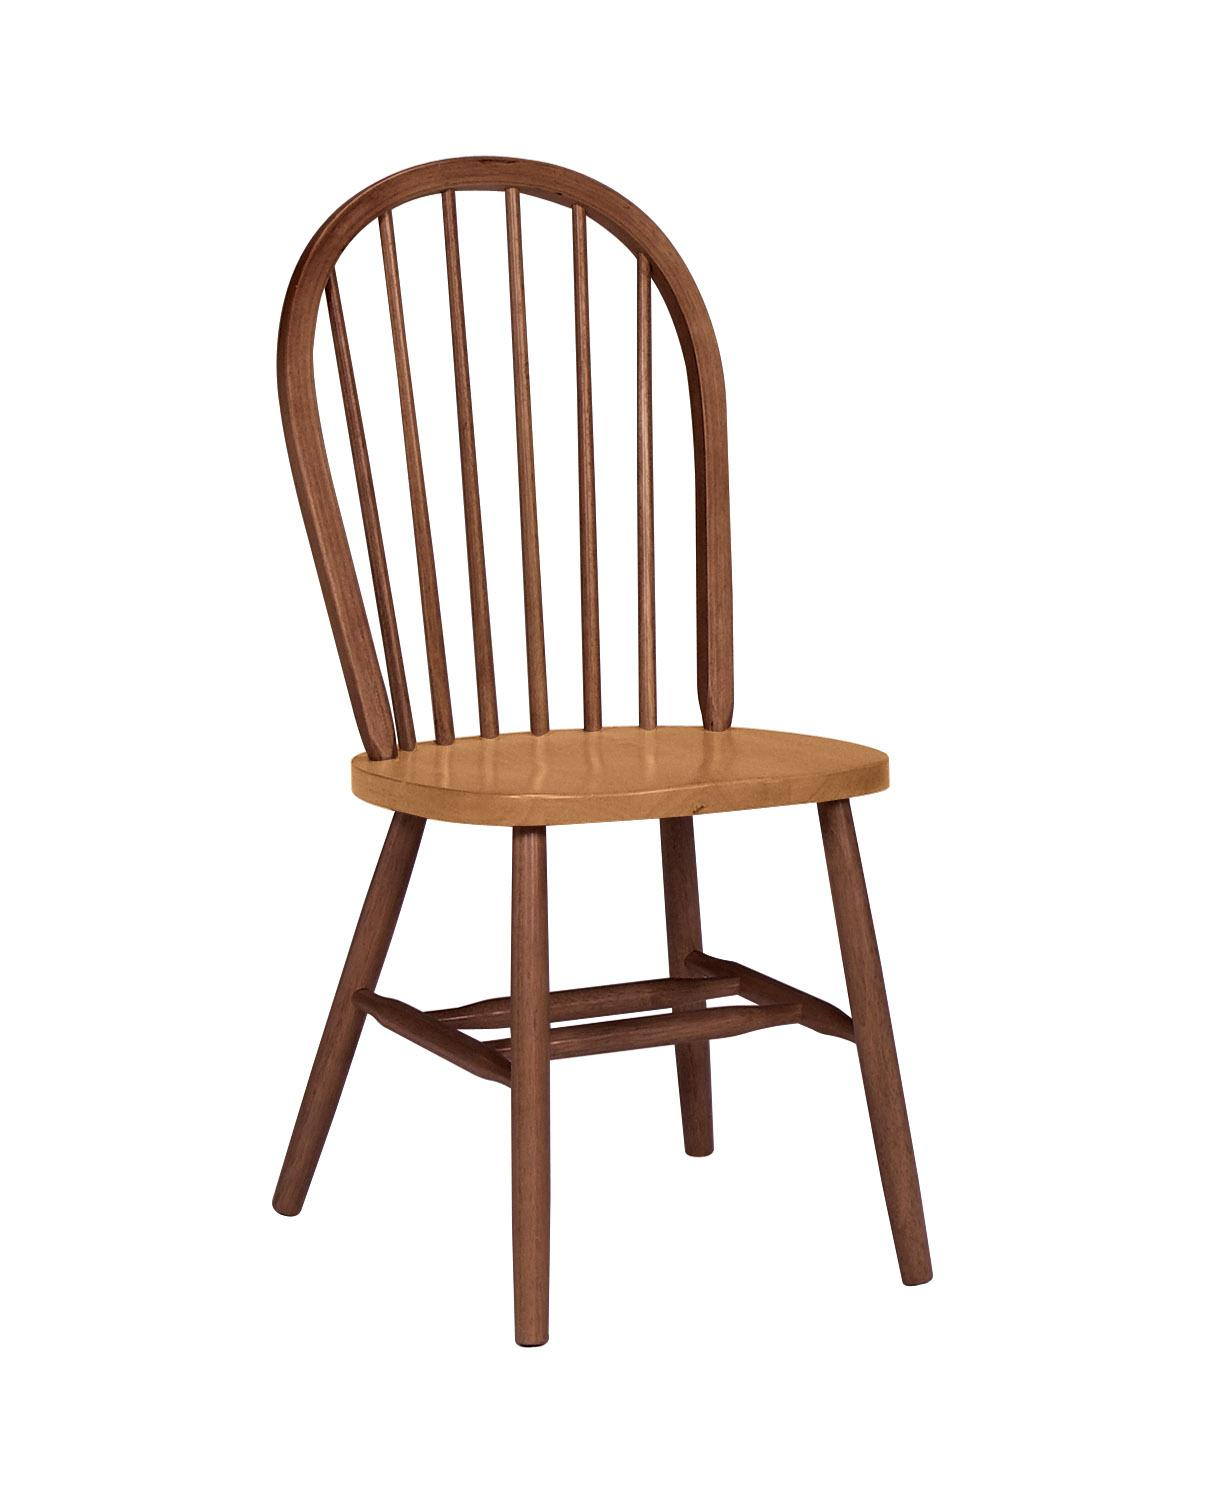 John Thomas Dining Essentials Windsor Dining Side Chair - Item Number: C58-112